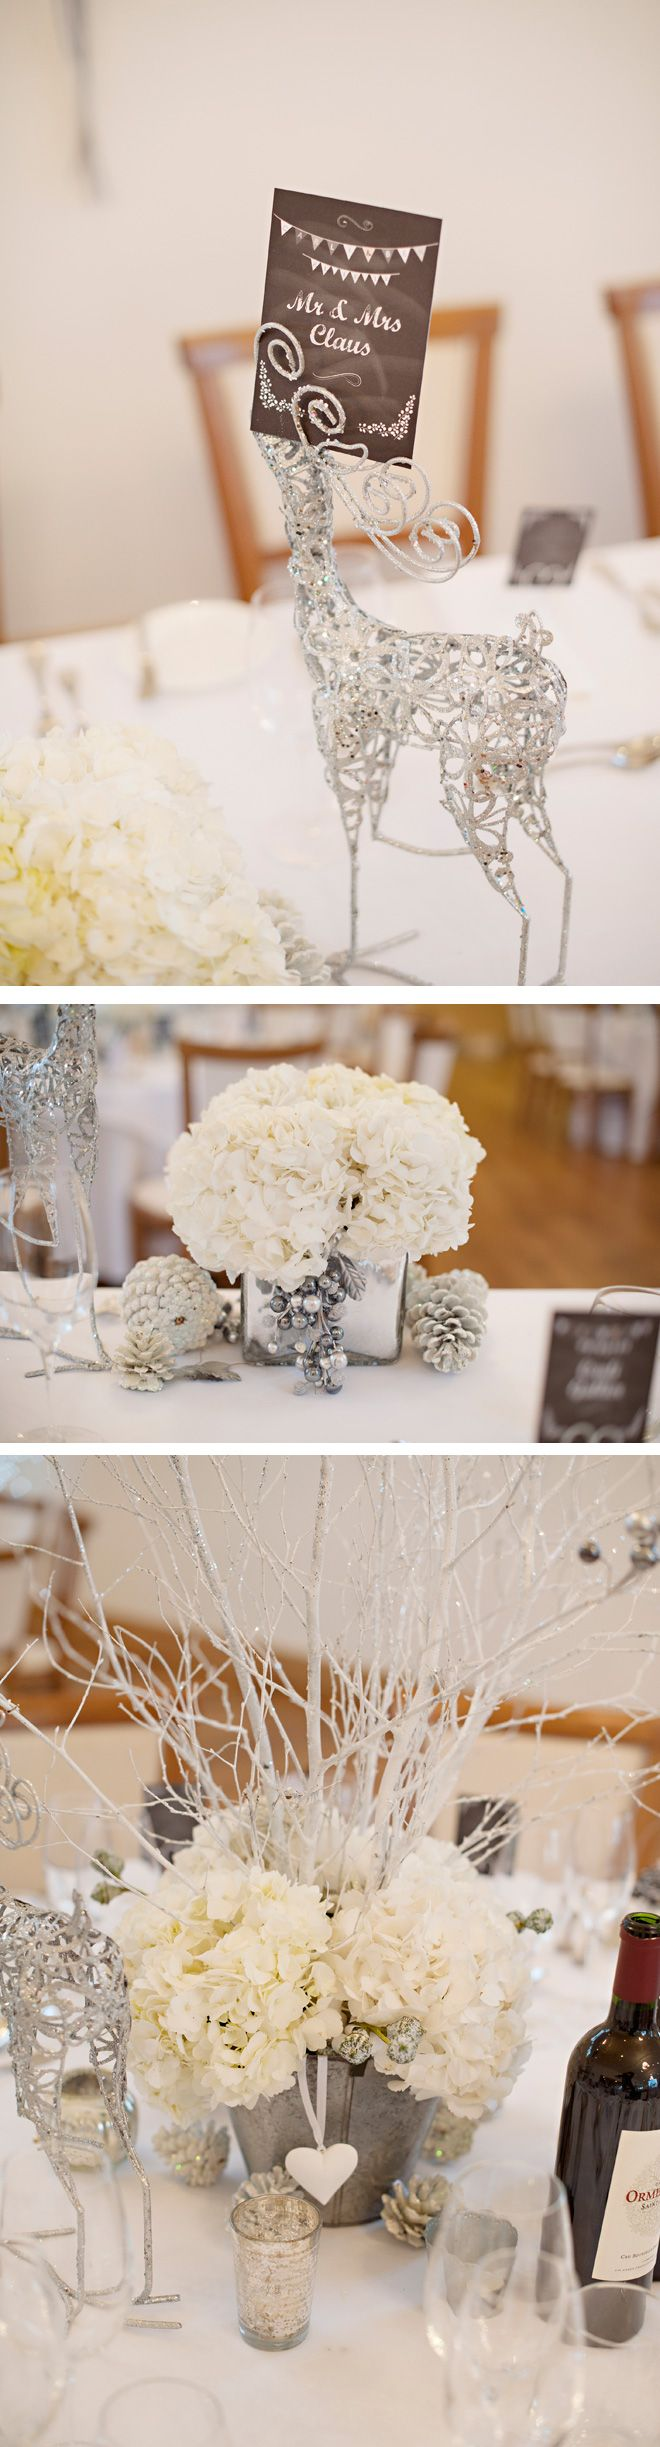 Christmas weddings are double the fun. Festive spirit meets the happiest day of your life creating a magnified sense of togetherness and celebration. The abundance of lovely decorations makes a Christmas wedding theme one of the easiest to pull off, whatever your budget. Here are just a few of ideas.